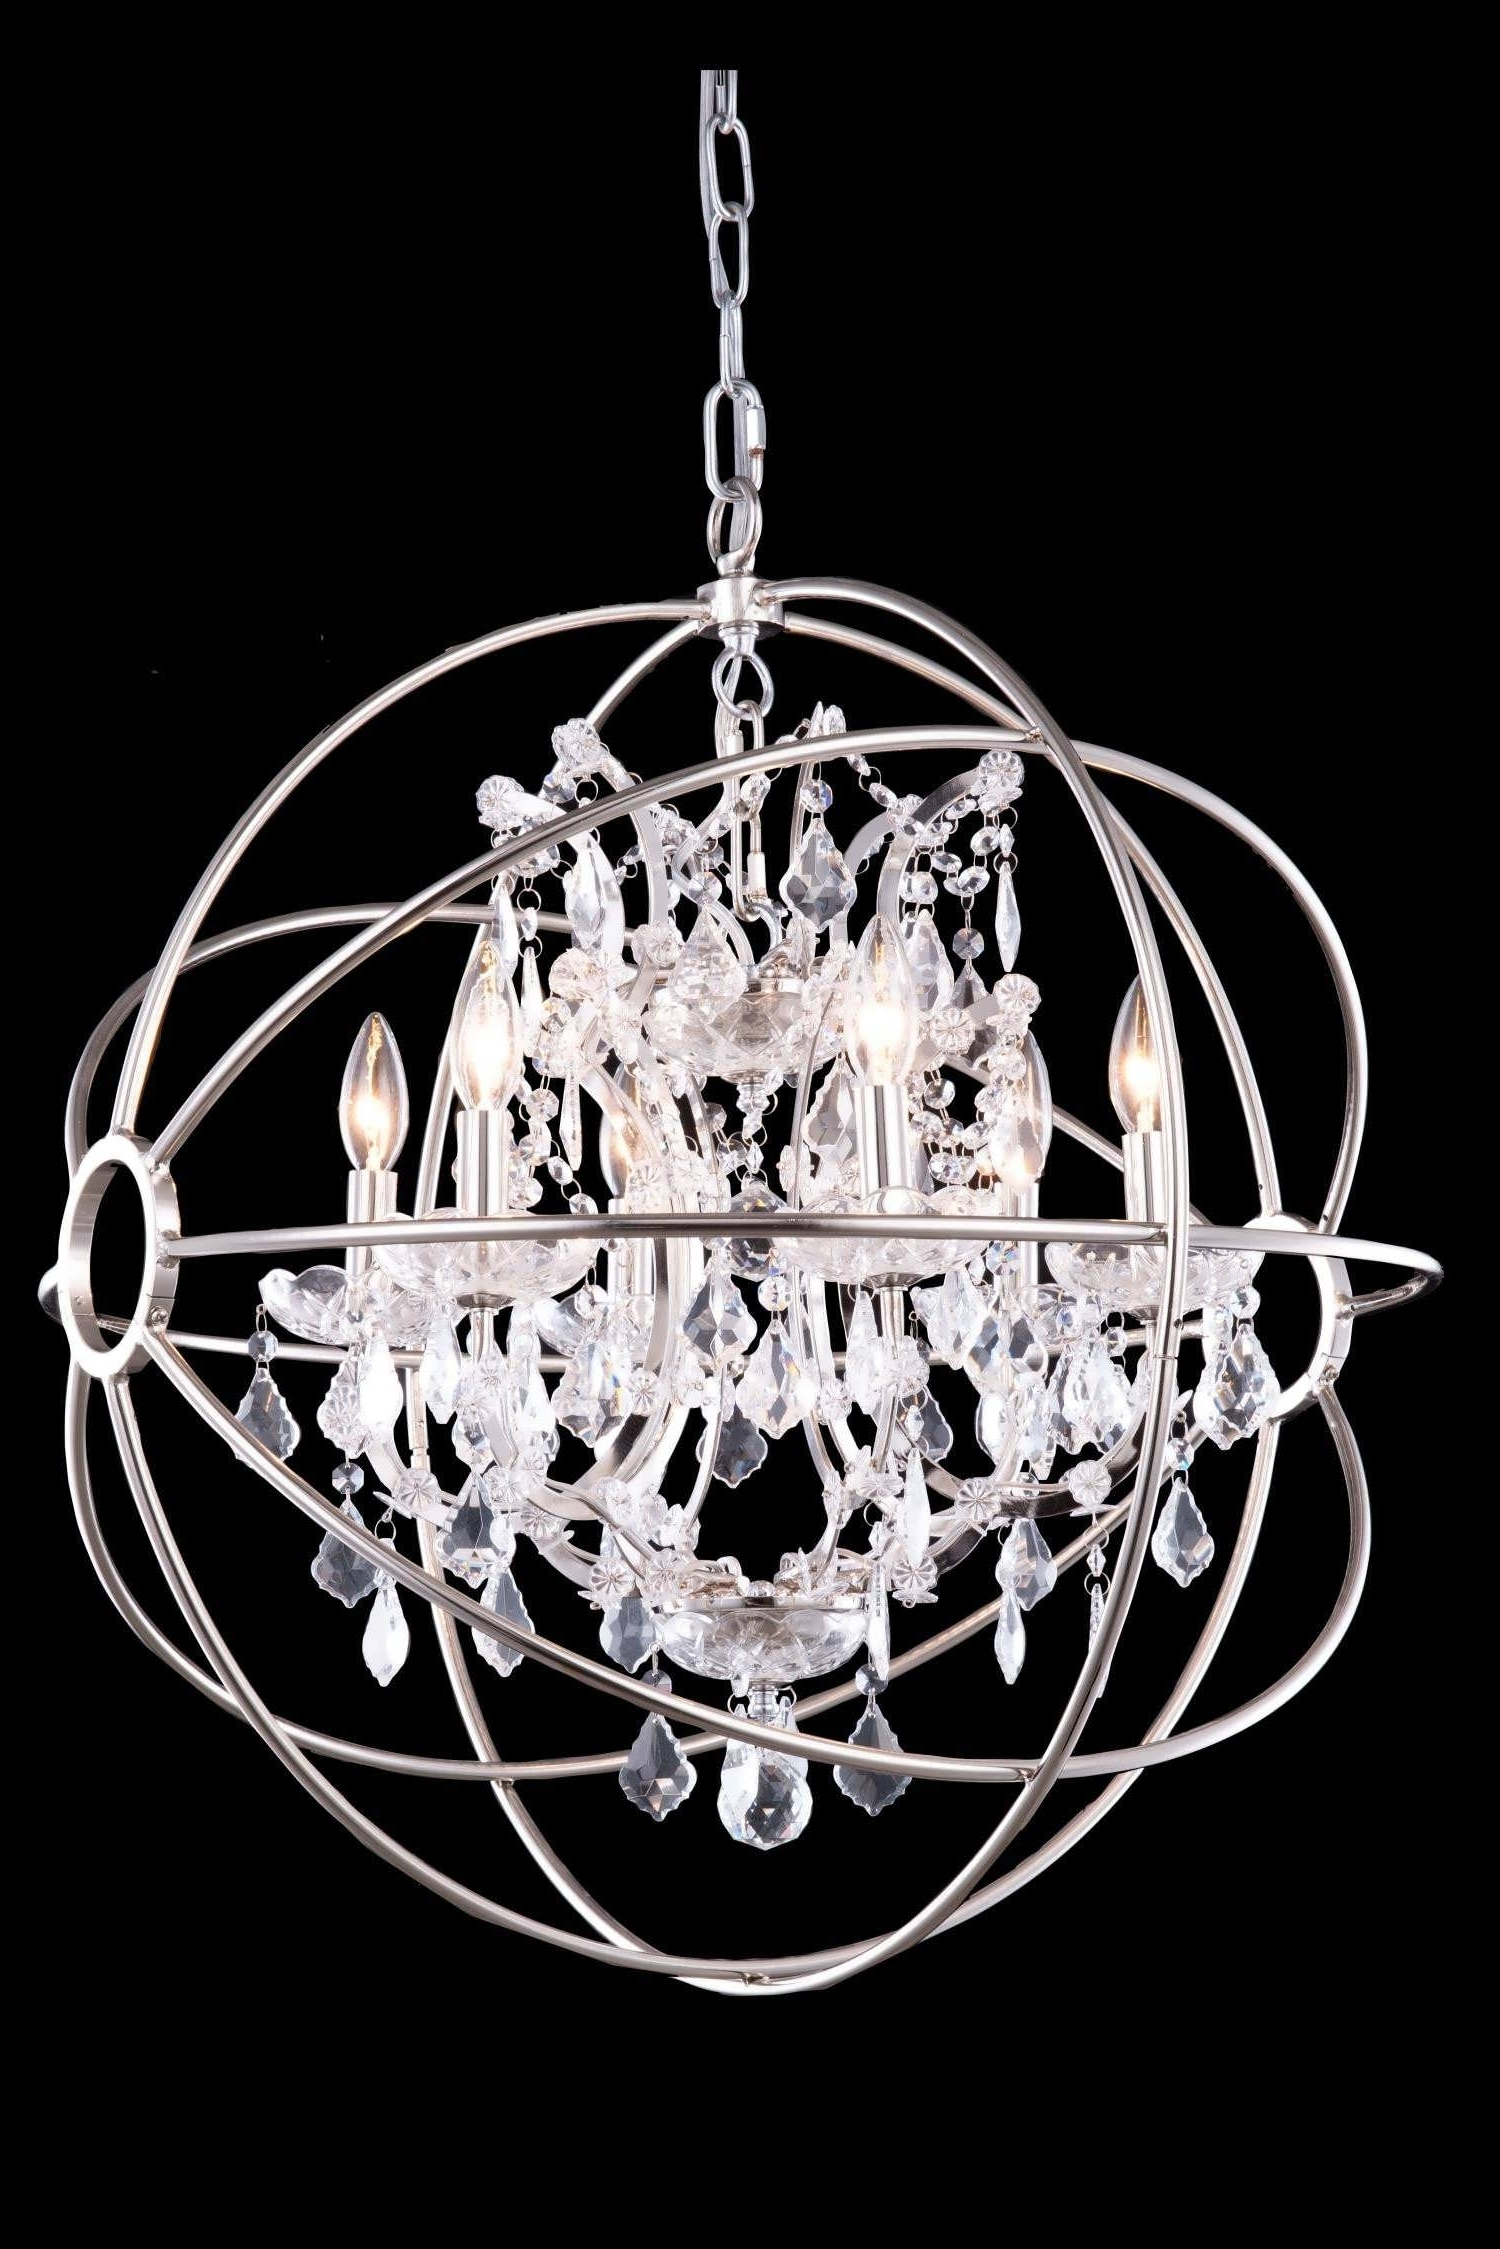 Chandeliers Design : Magnificent Beautiful Metal Ball Candle Within Well Liked Metal Ball Candle Chandeliers (View 3 of 20)